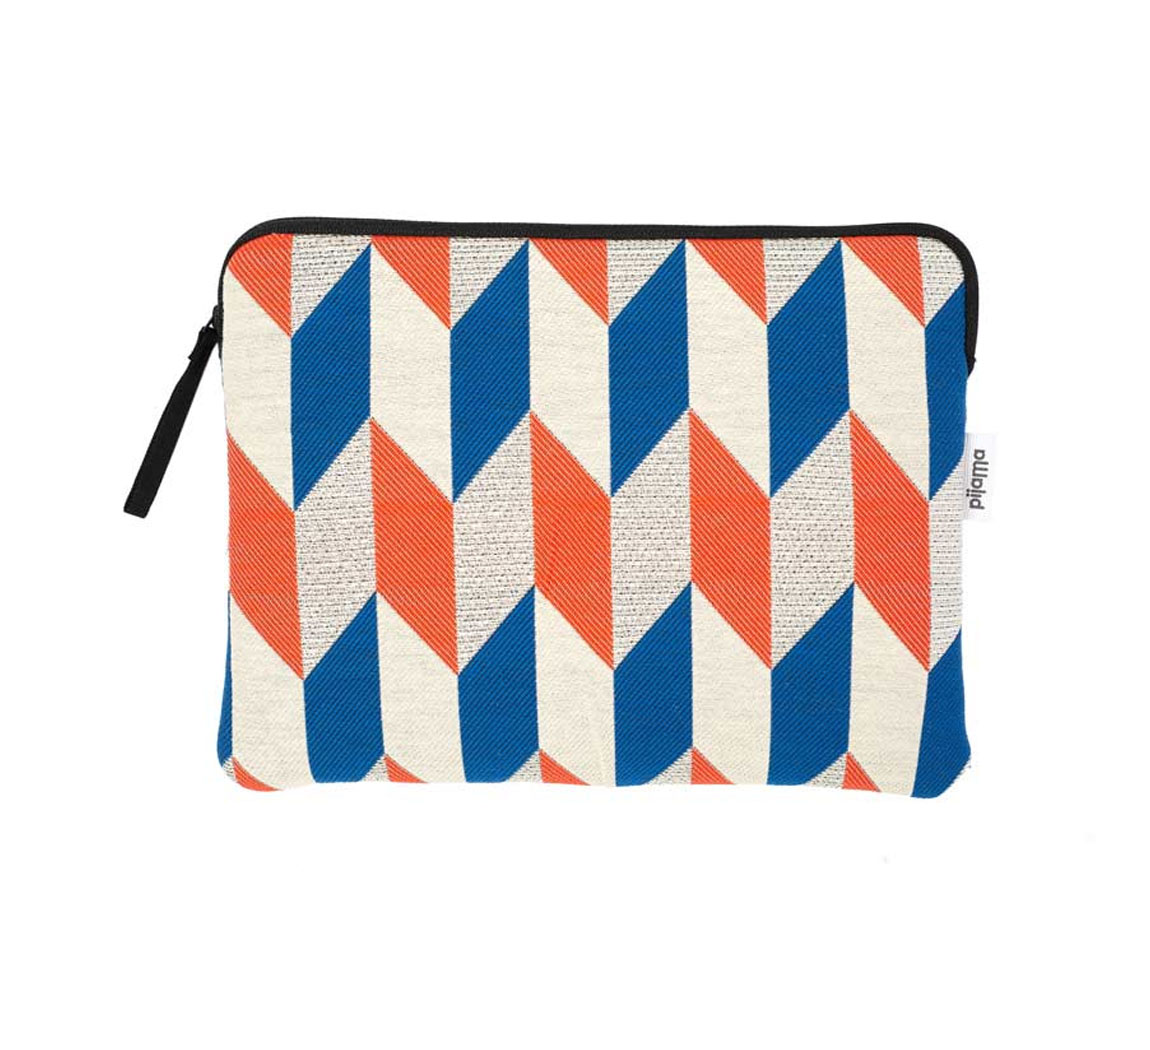 Zip case for laptop 15 Zip case for laptop 15